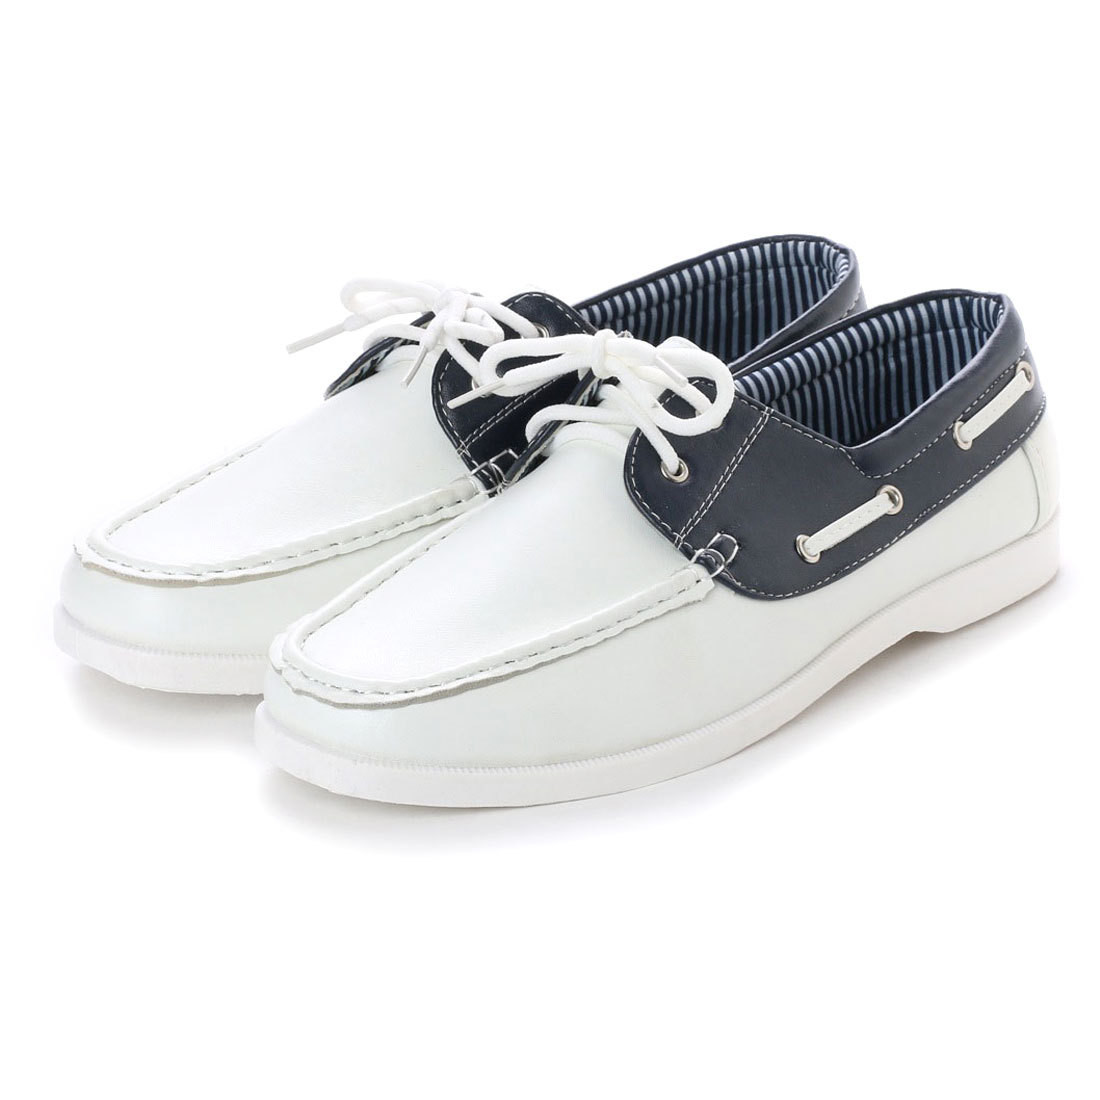 Deck Shoes White   Export Japanese